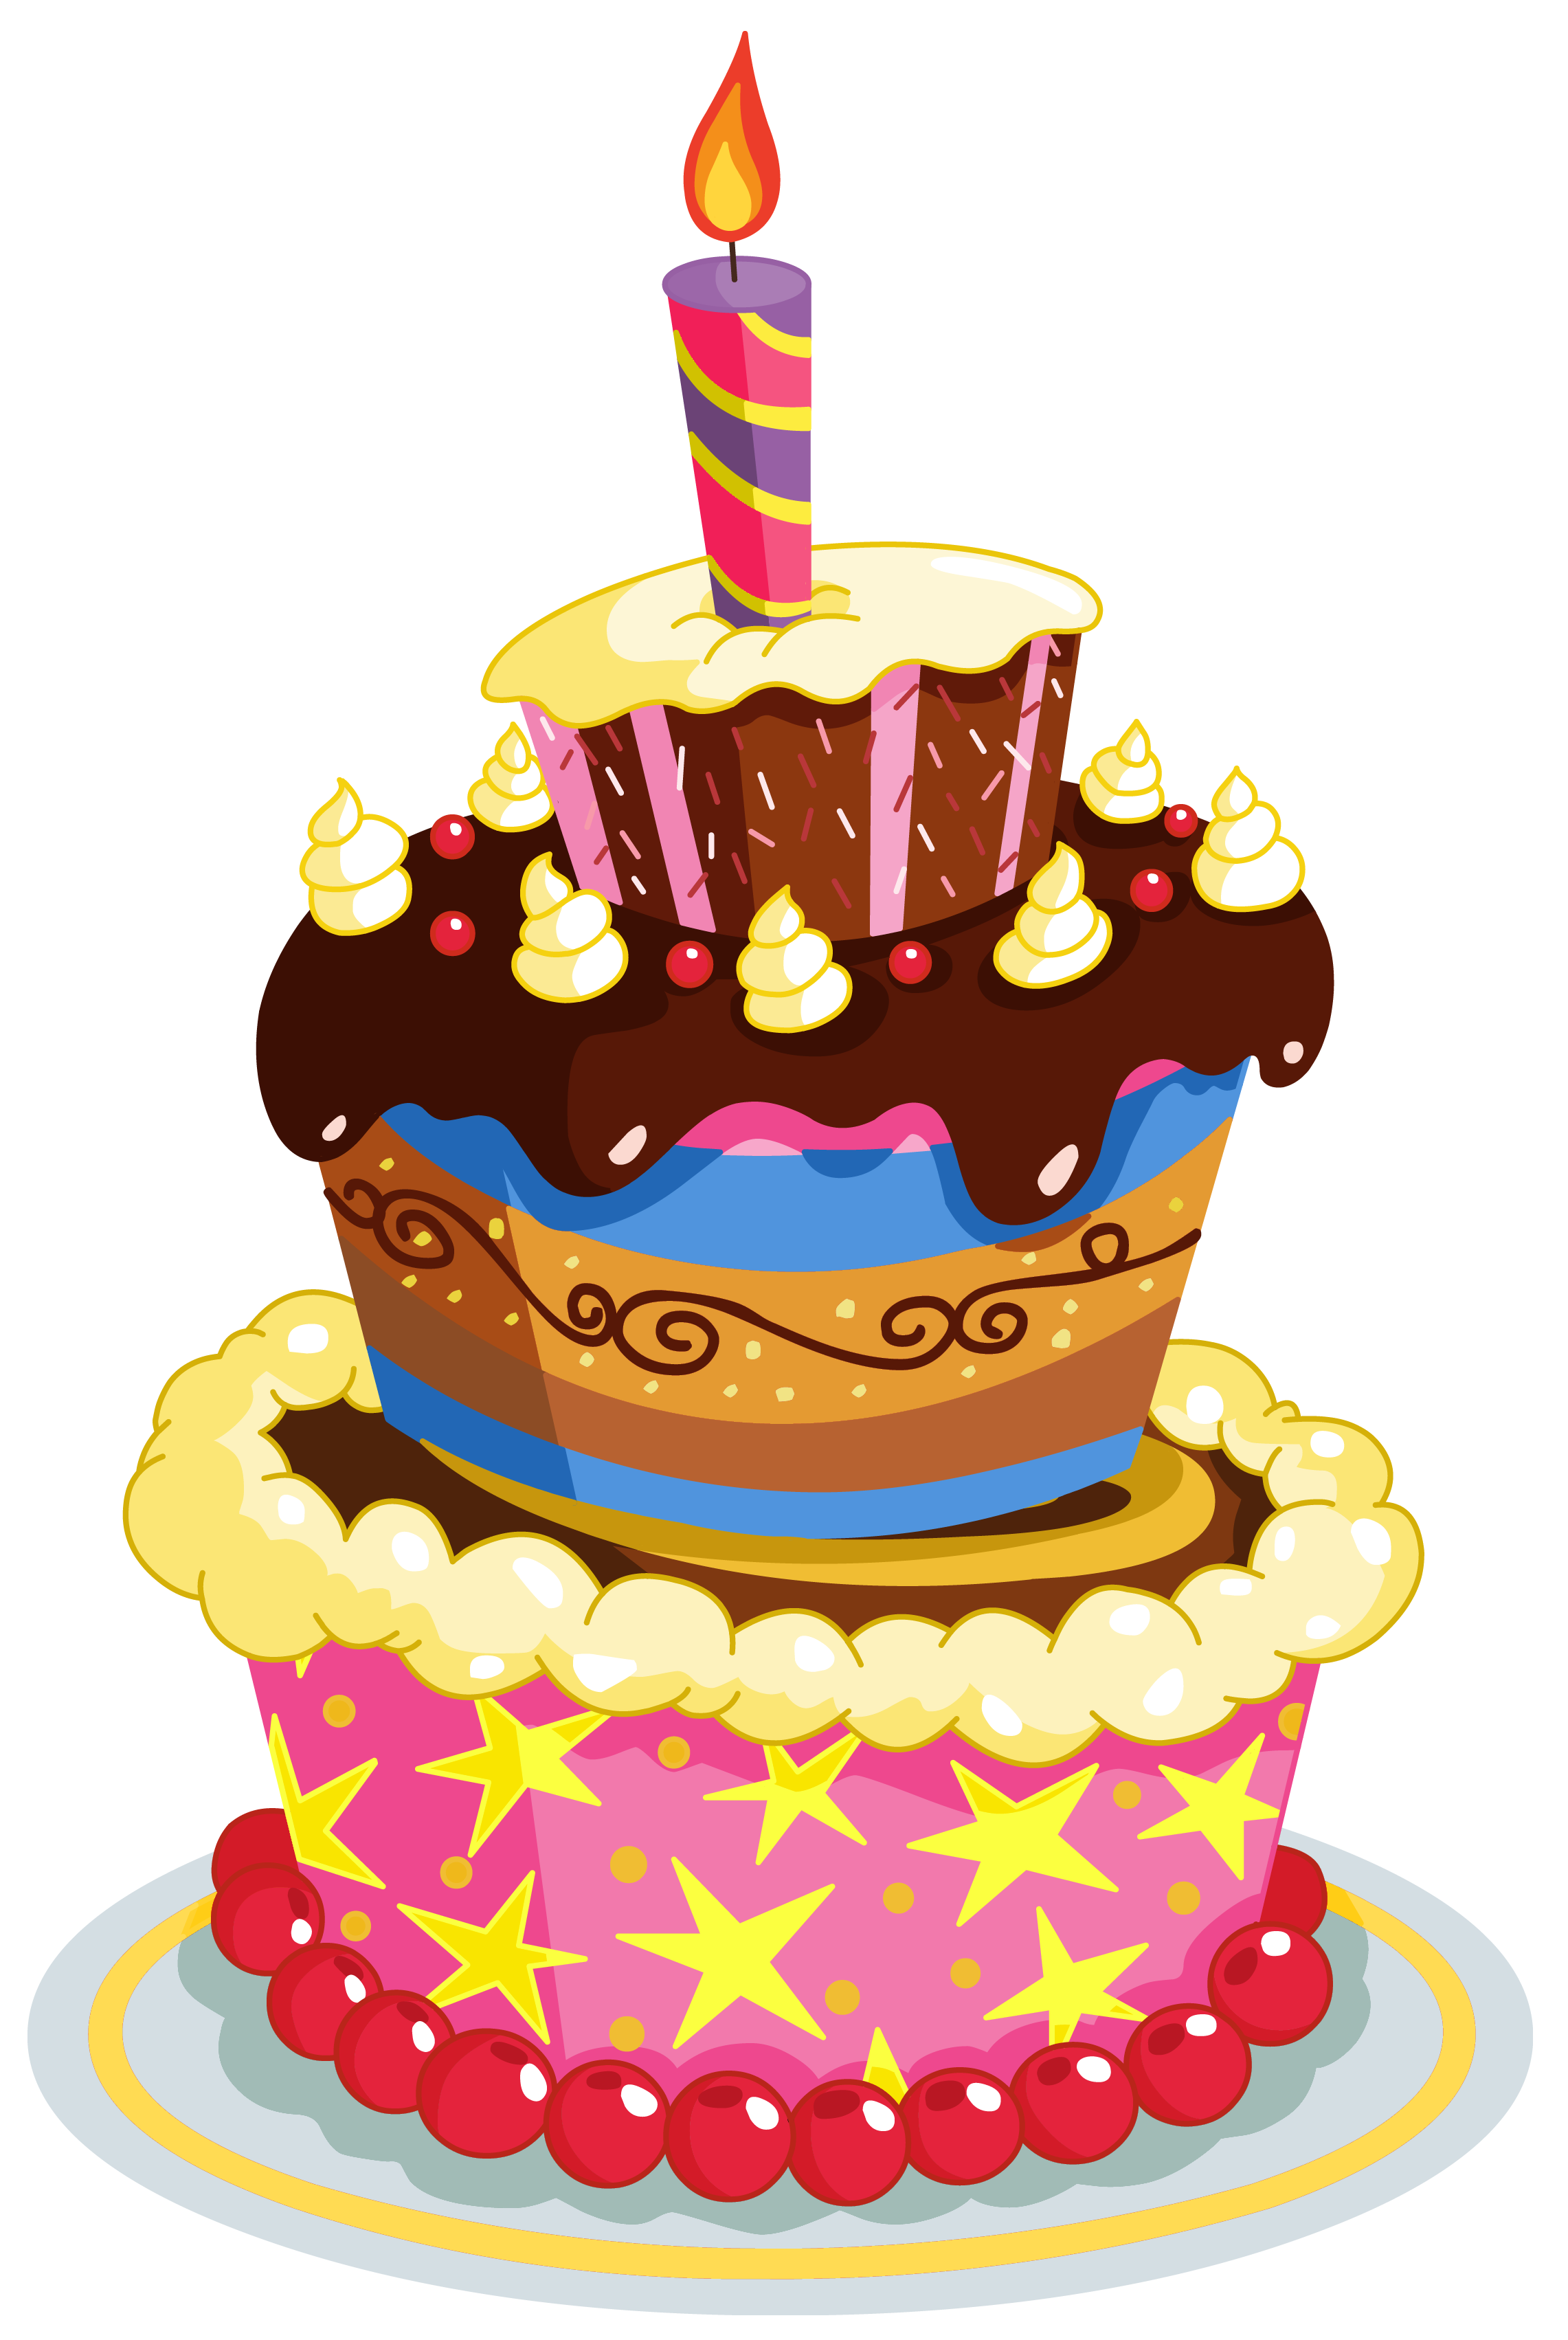 Birthday cake clipart animated image free Colorful Birthday Cake PNG Clipart | Clip art | Pinterest | Colorful ... image free